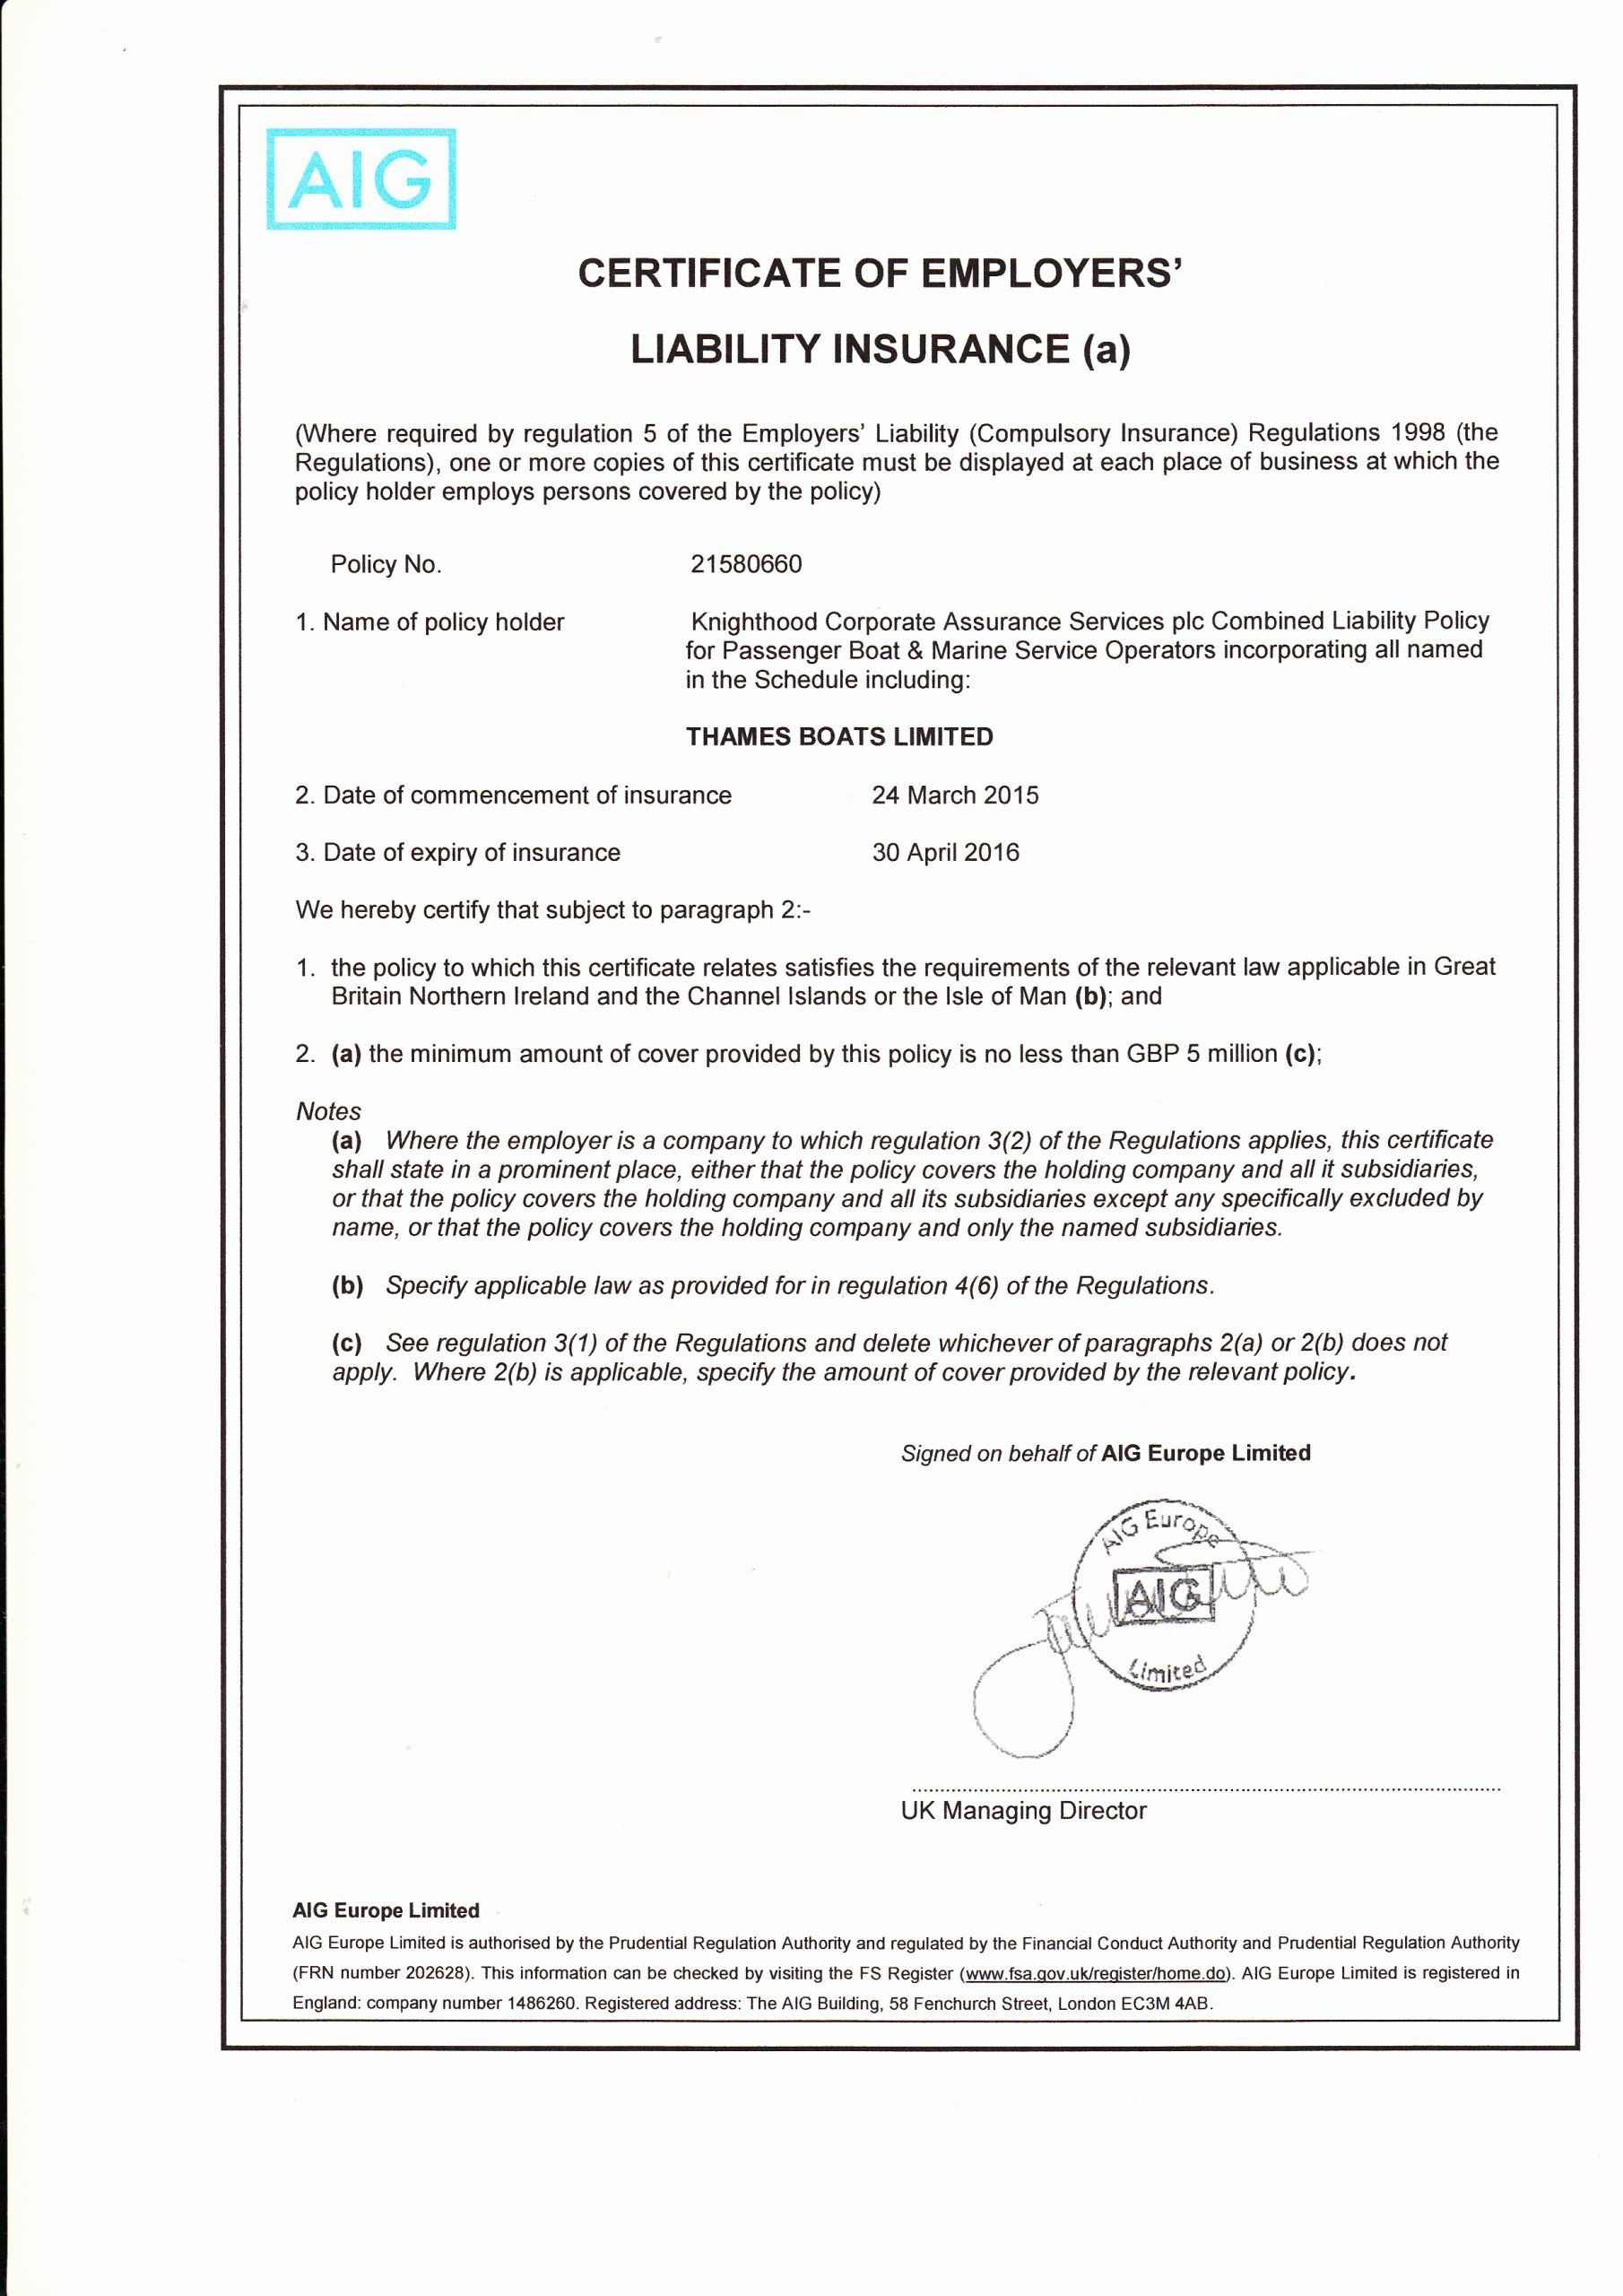 Alarm Certificate For Insurance Template Luxury Insurance Policy Verification Letter In 2019 Dannybarrantes Template Statement Template Templates Certificate Alarm certificate for insurance template